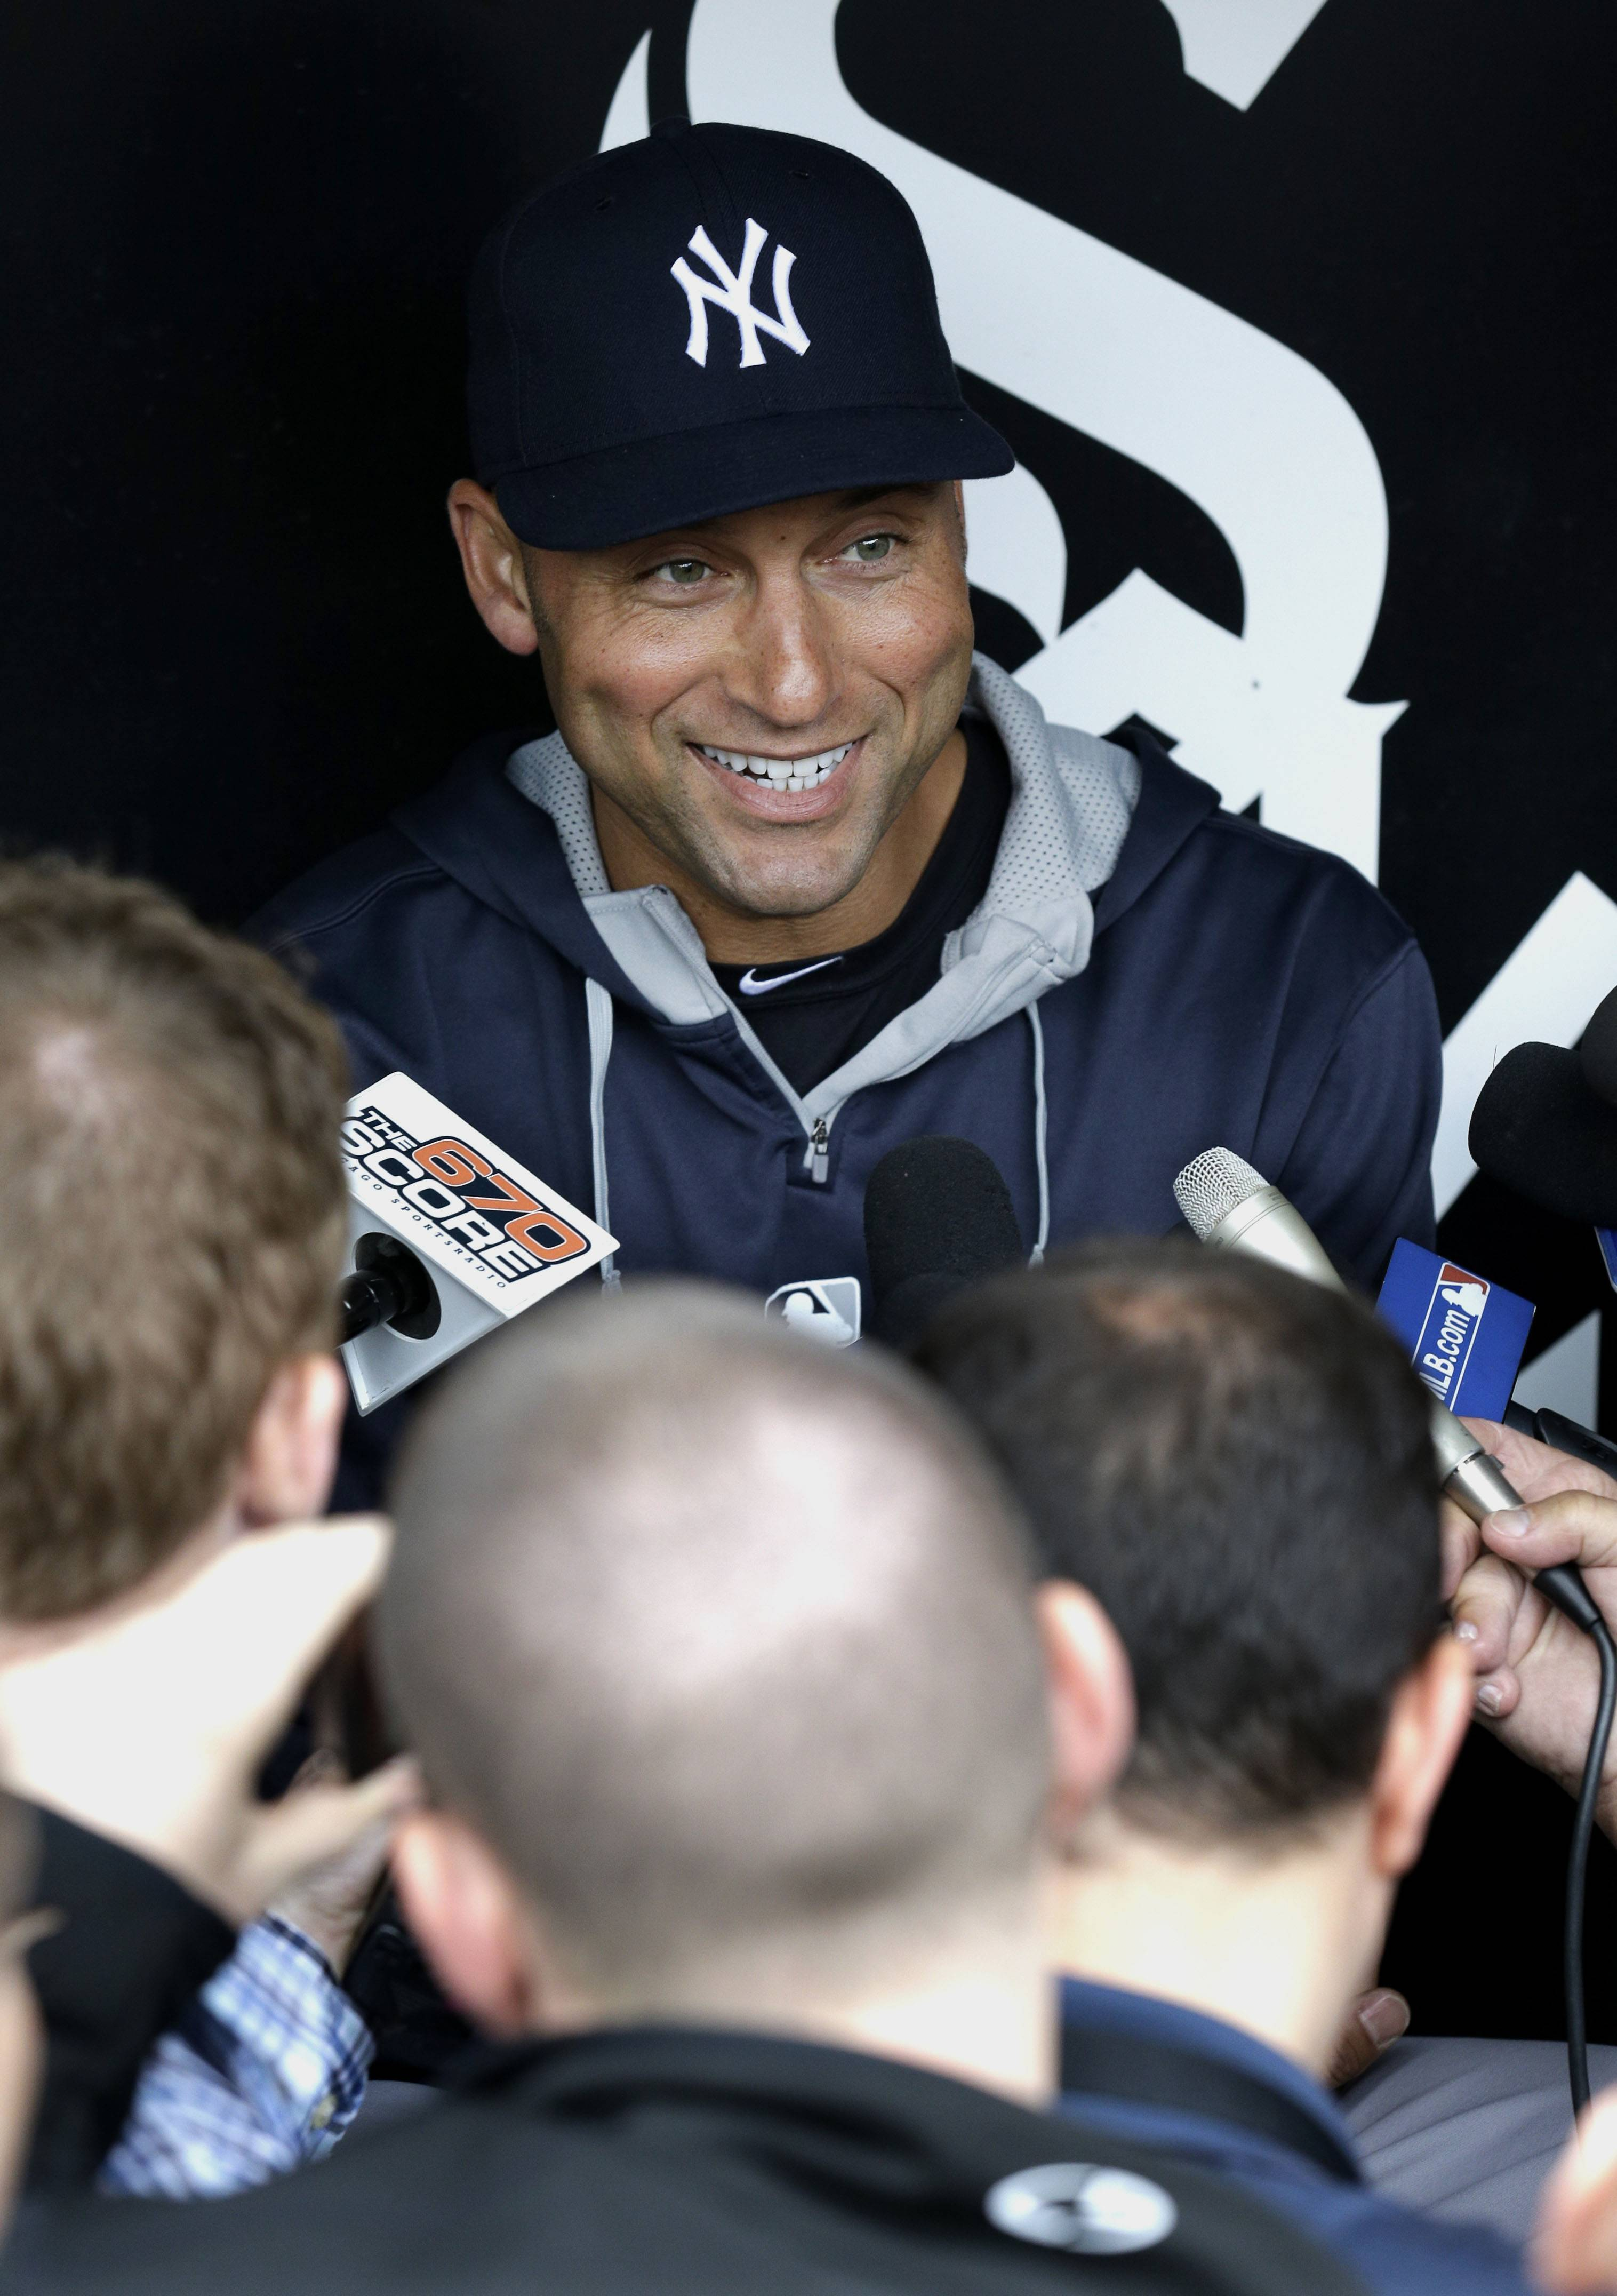 New York Yankees infielder Derek Jeter smiles as he talks to media at a news conference before a baseball game against the Chicago White Sox in Chicago on Thursday, May 22, 2014.